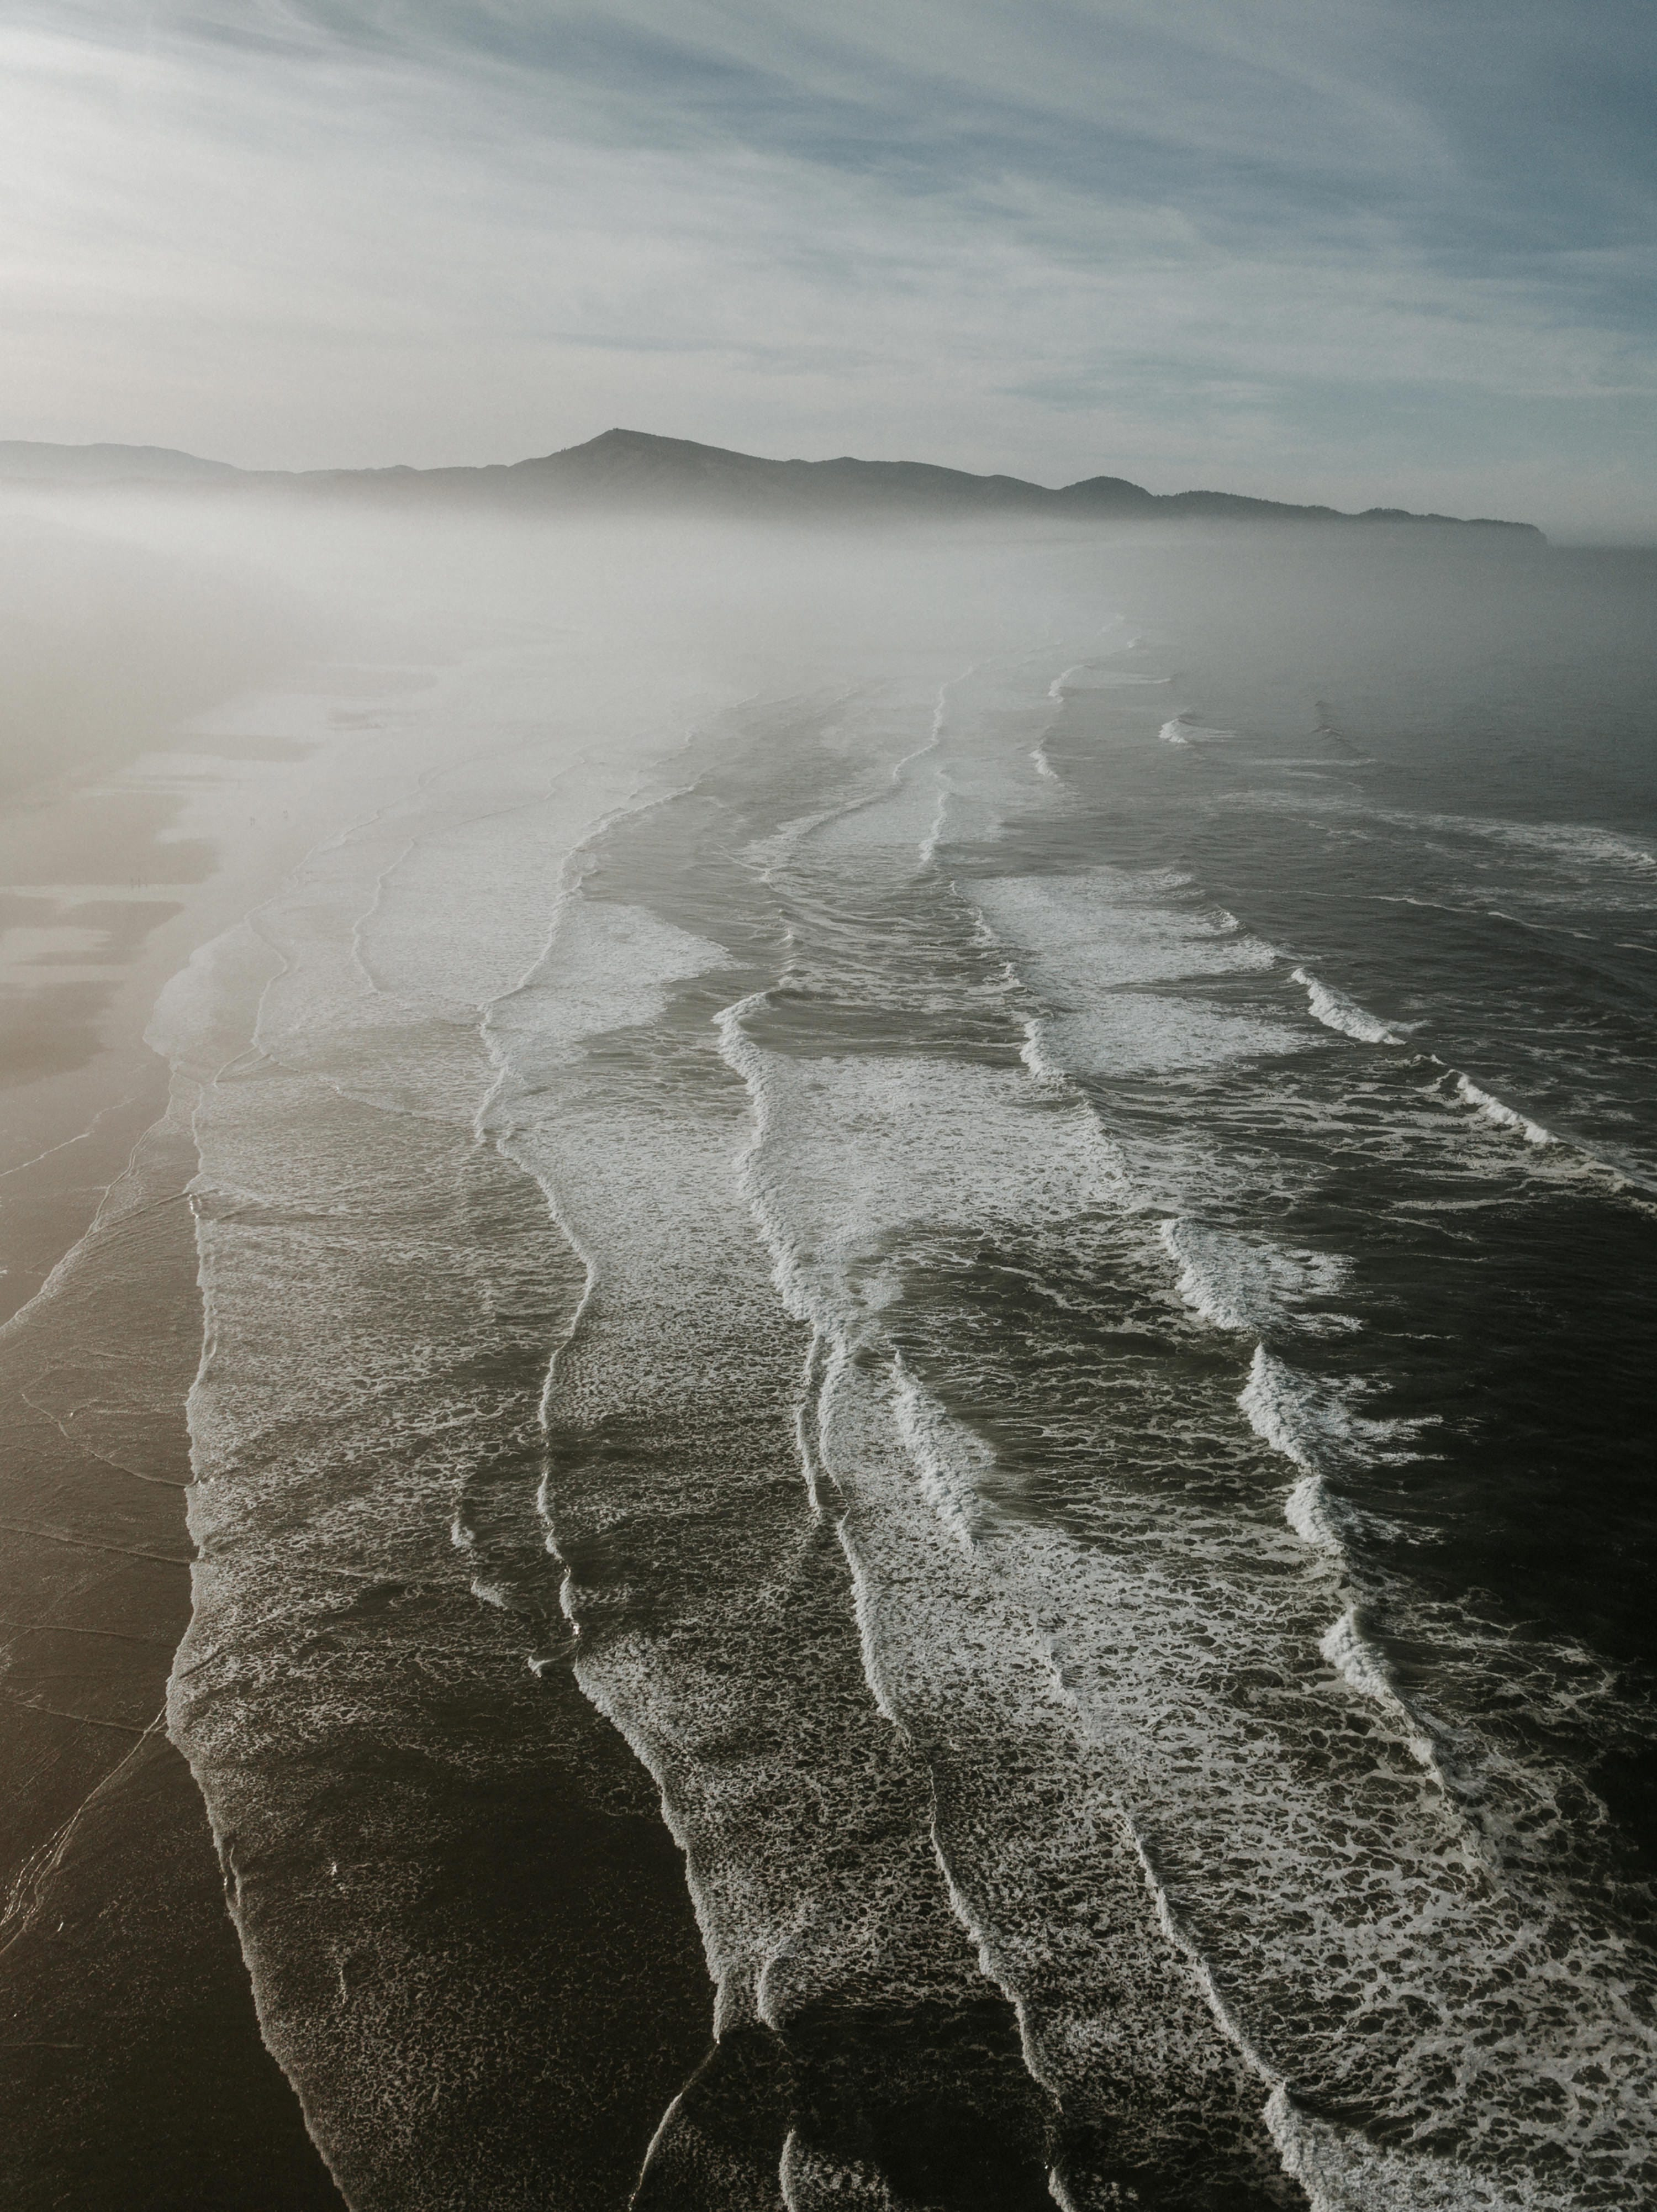 Drone shot over west coast beach